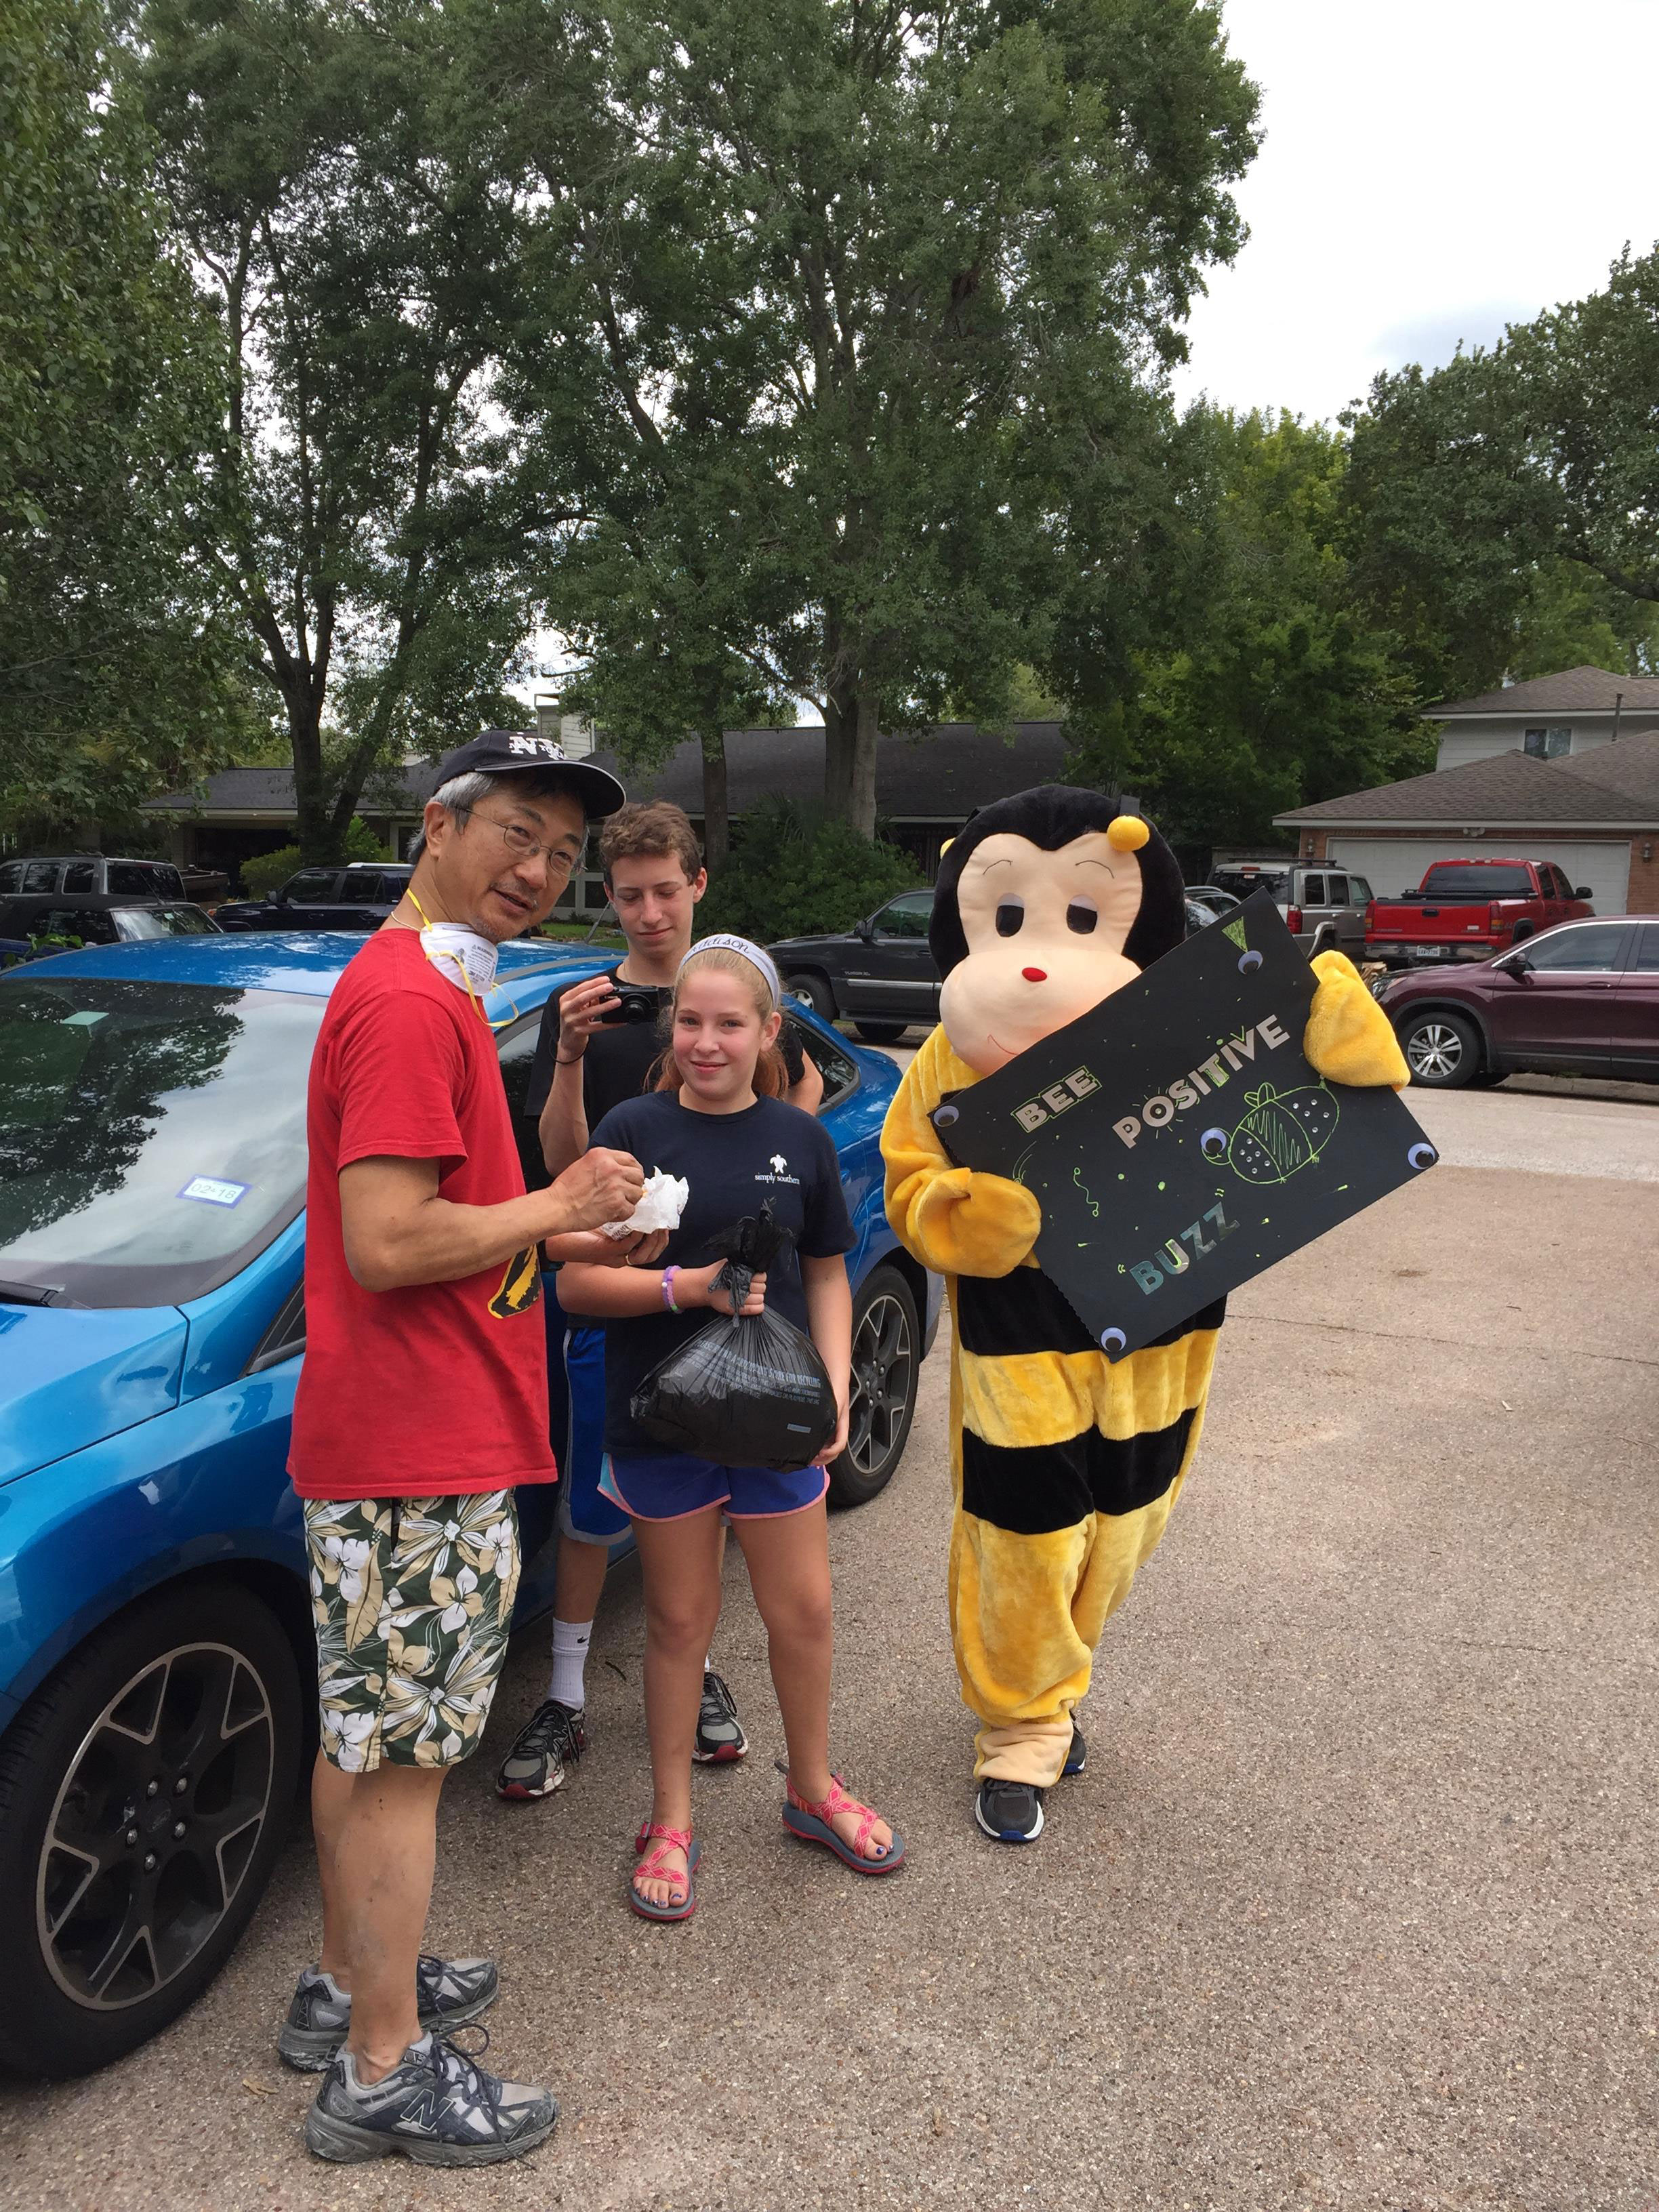 "<div class=""meta image-caption""><div class=""origin-logo origin-image none""><span>none</span></div><span class=""caption-text"">A person dressed as a bee in the Willow Meadows subdivision was handing out free food with a message: ''Bee positive.'' (Stephanie Ochoa)</span></div>"